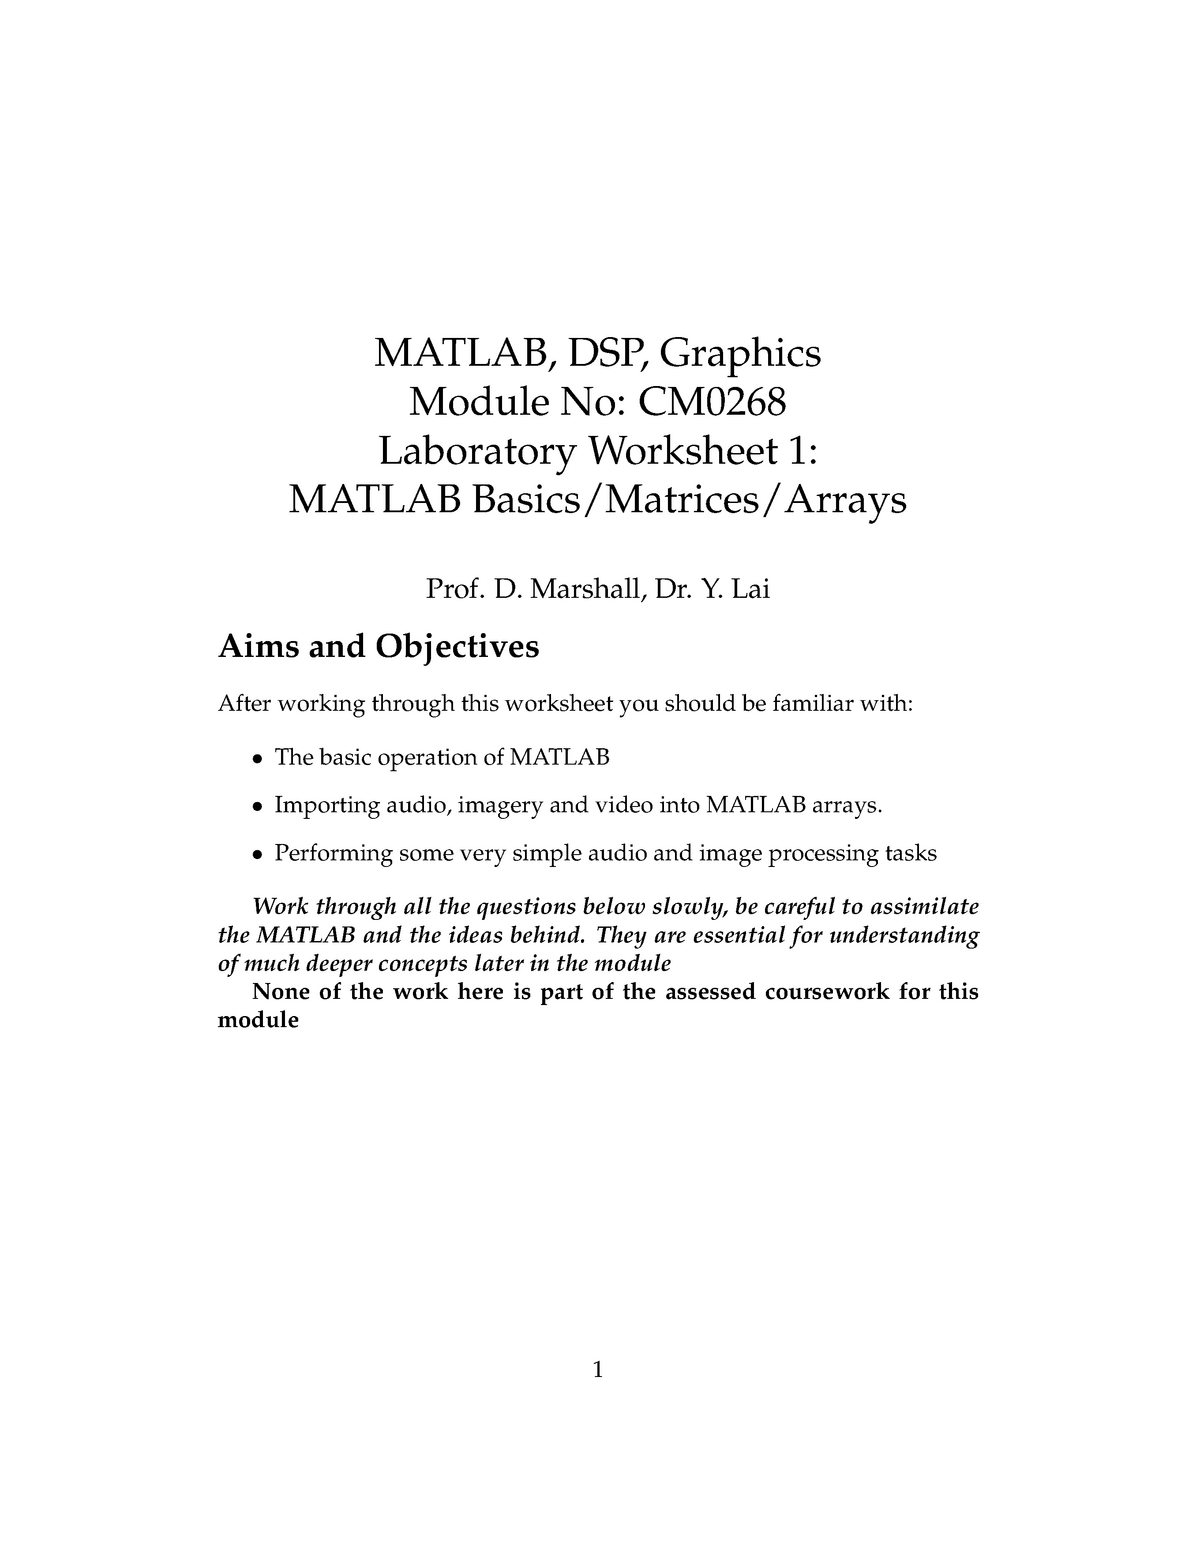 Lab Sheet 1: MATLAB Basics/Matrices/Arrays - CM0268: Data, Audio